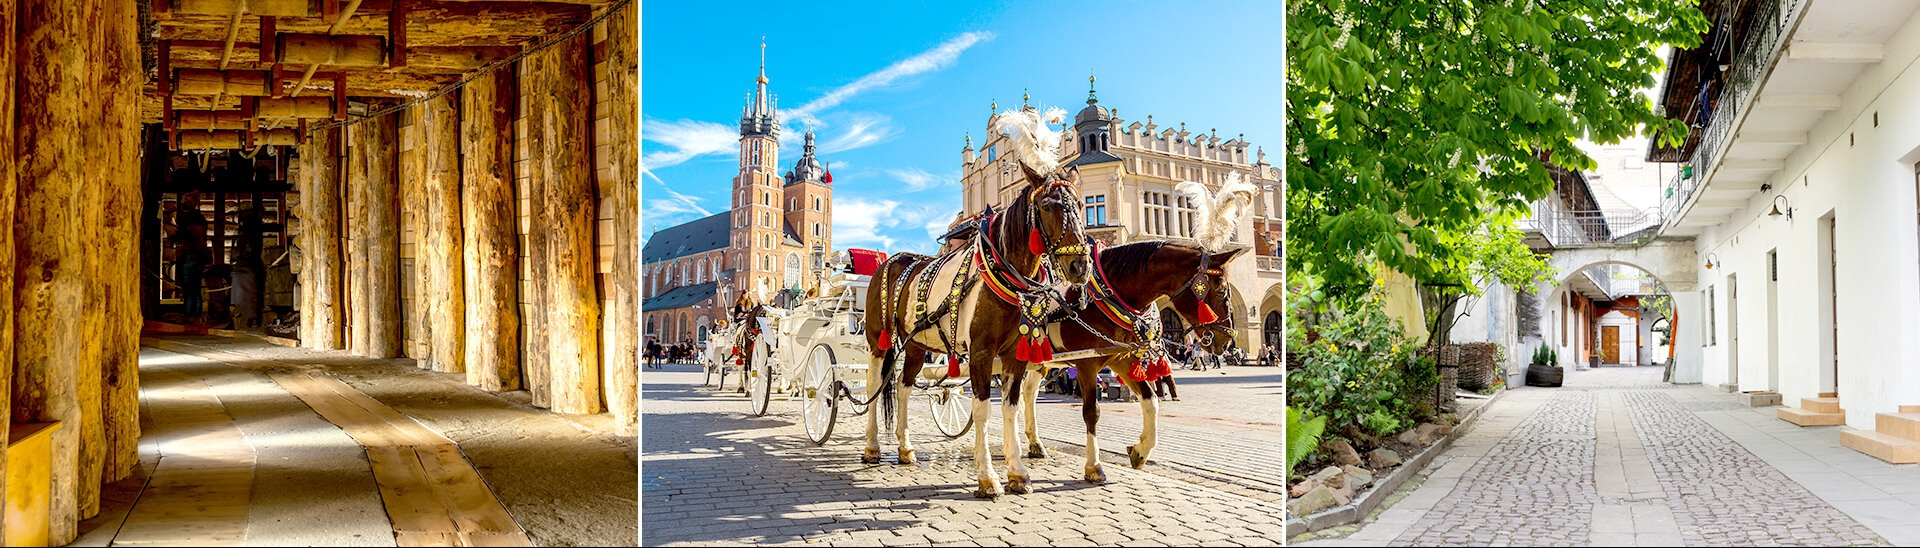 Package tours to Krakow - private guided tour with transport and hotel in Krakow